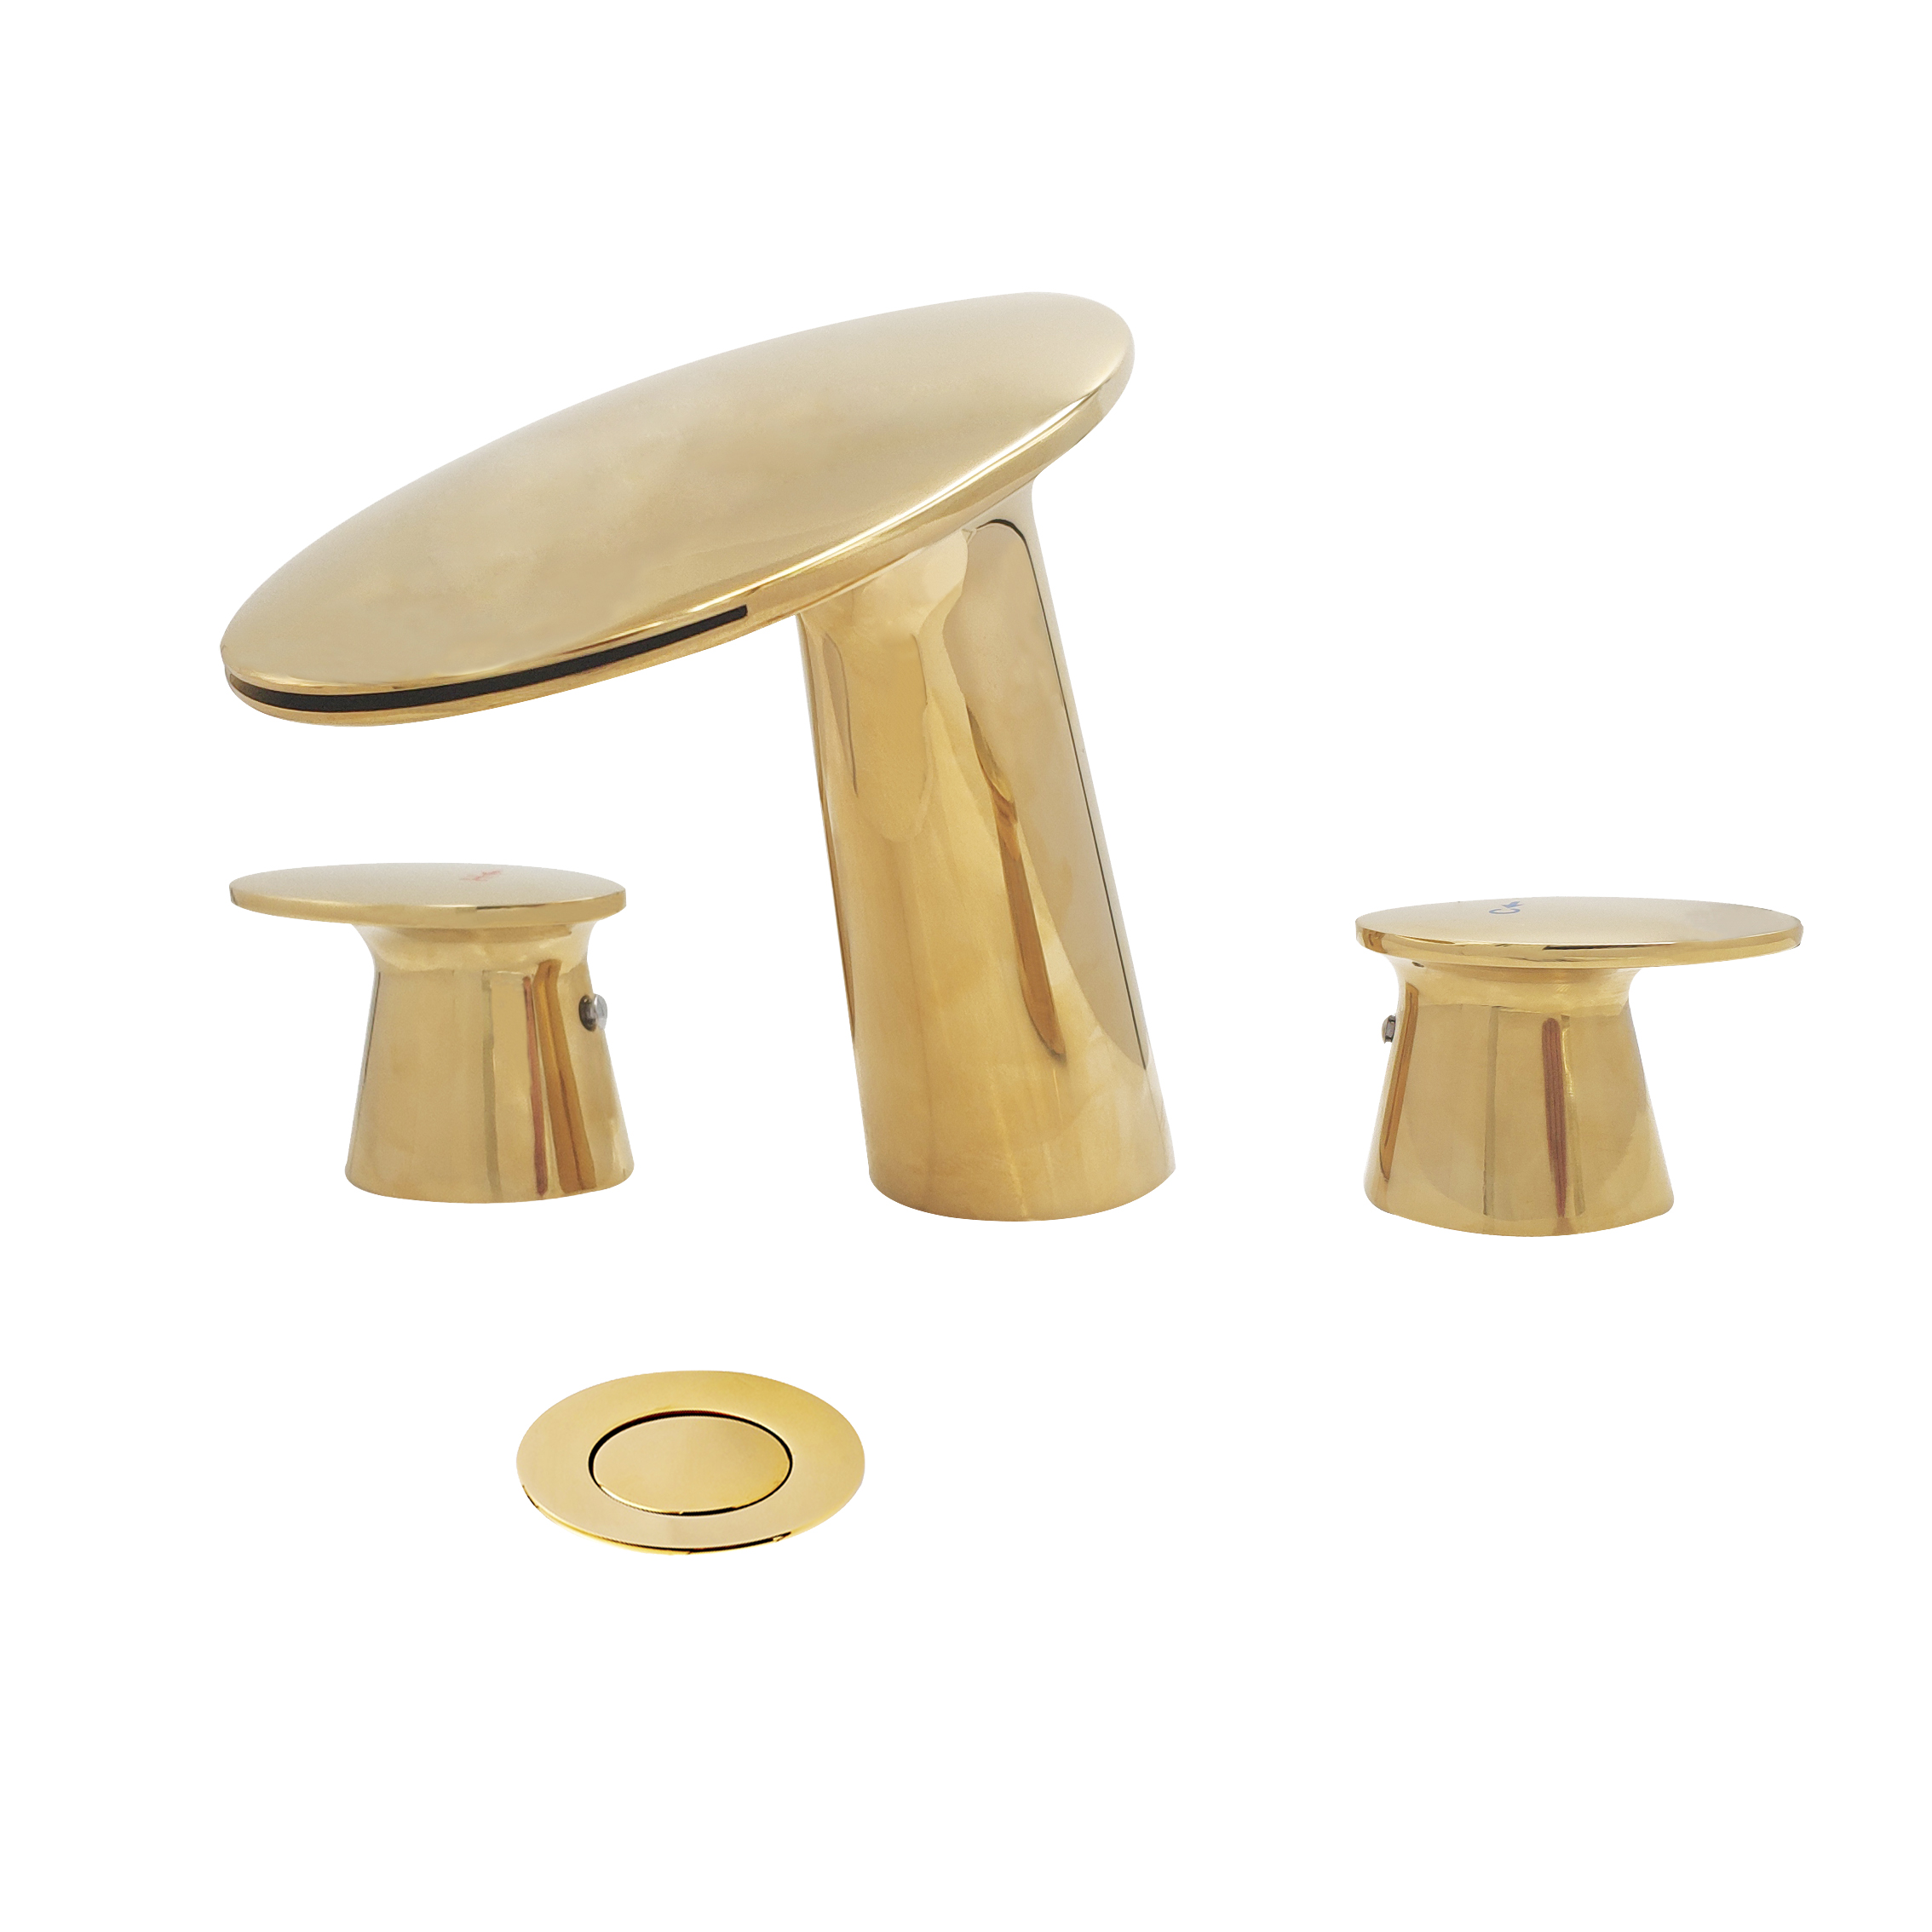 wovier w 8417 g widespread bathroom sink faucet gold two handle three hole